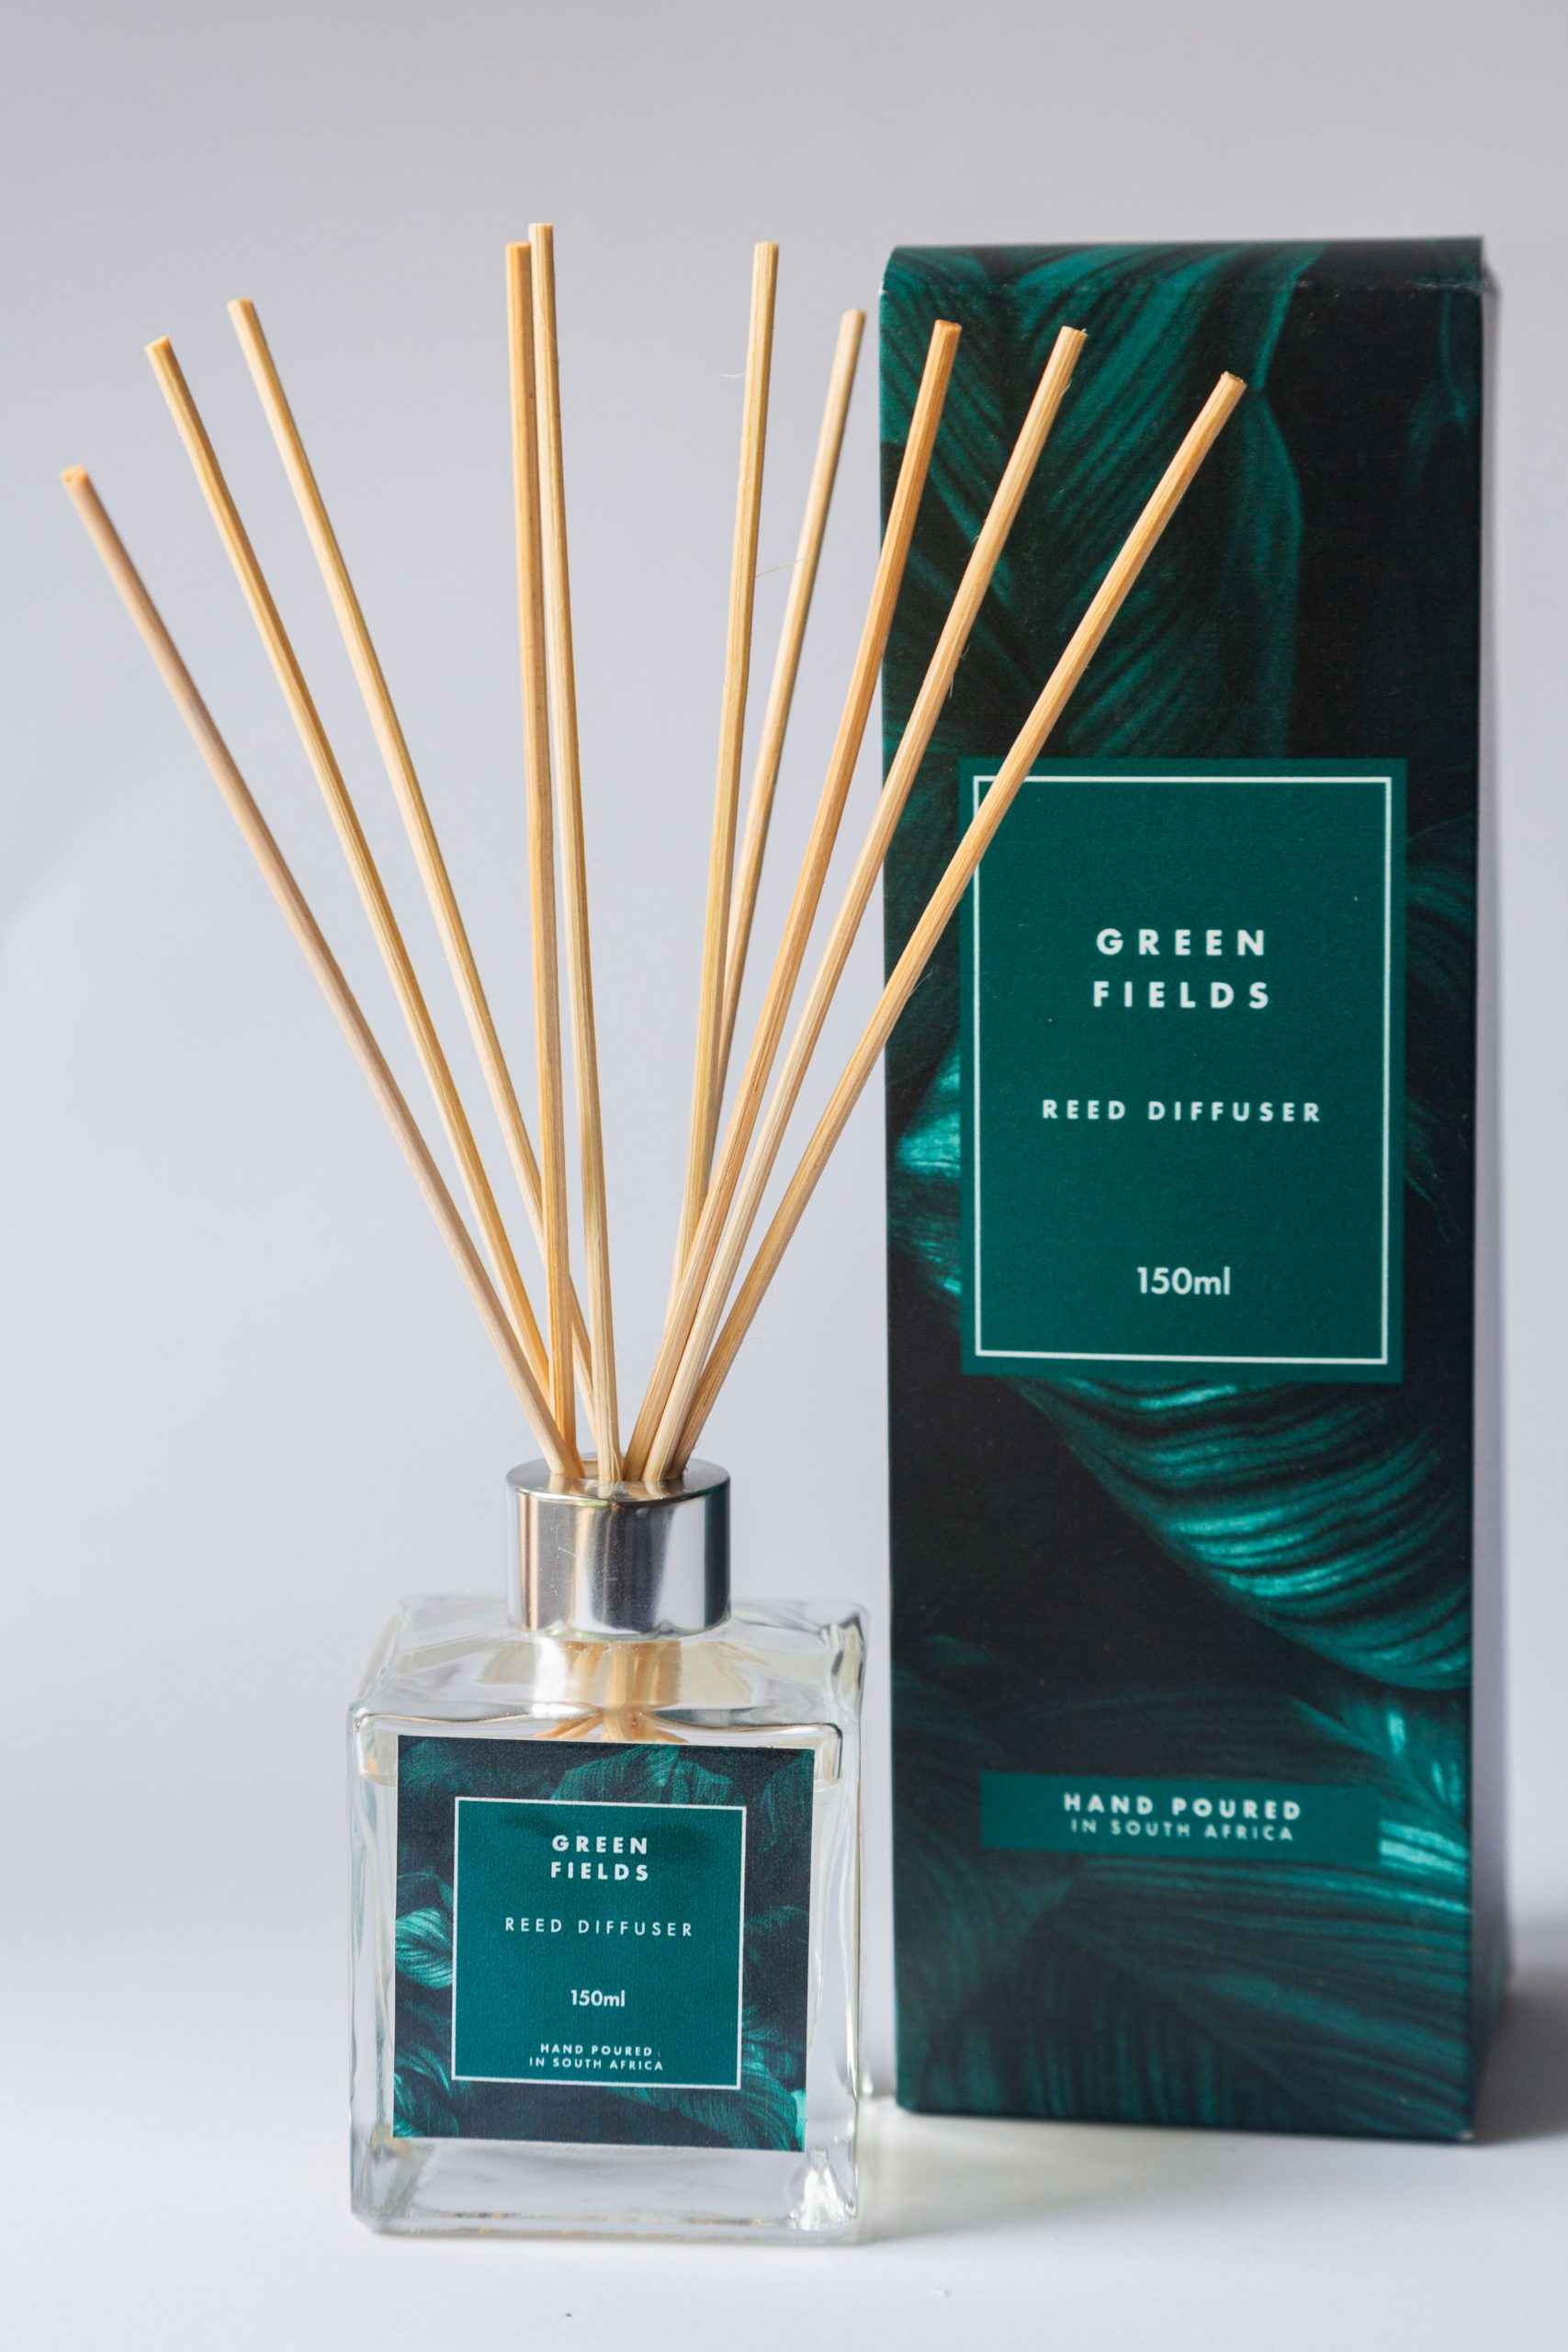 BABY POWDER Reed Diffuser Oil Refill Home Room Fragrance